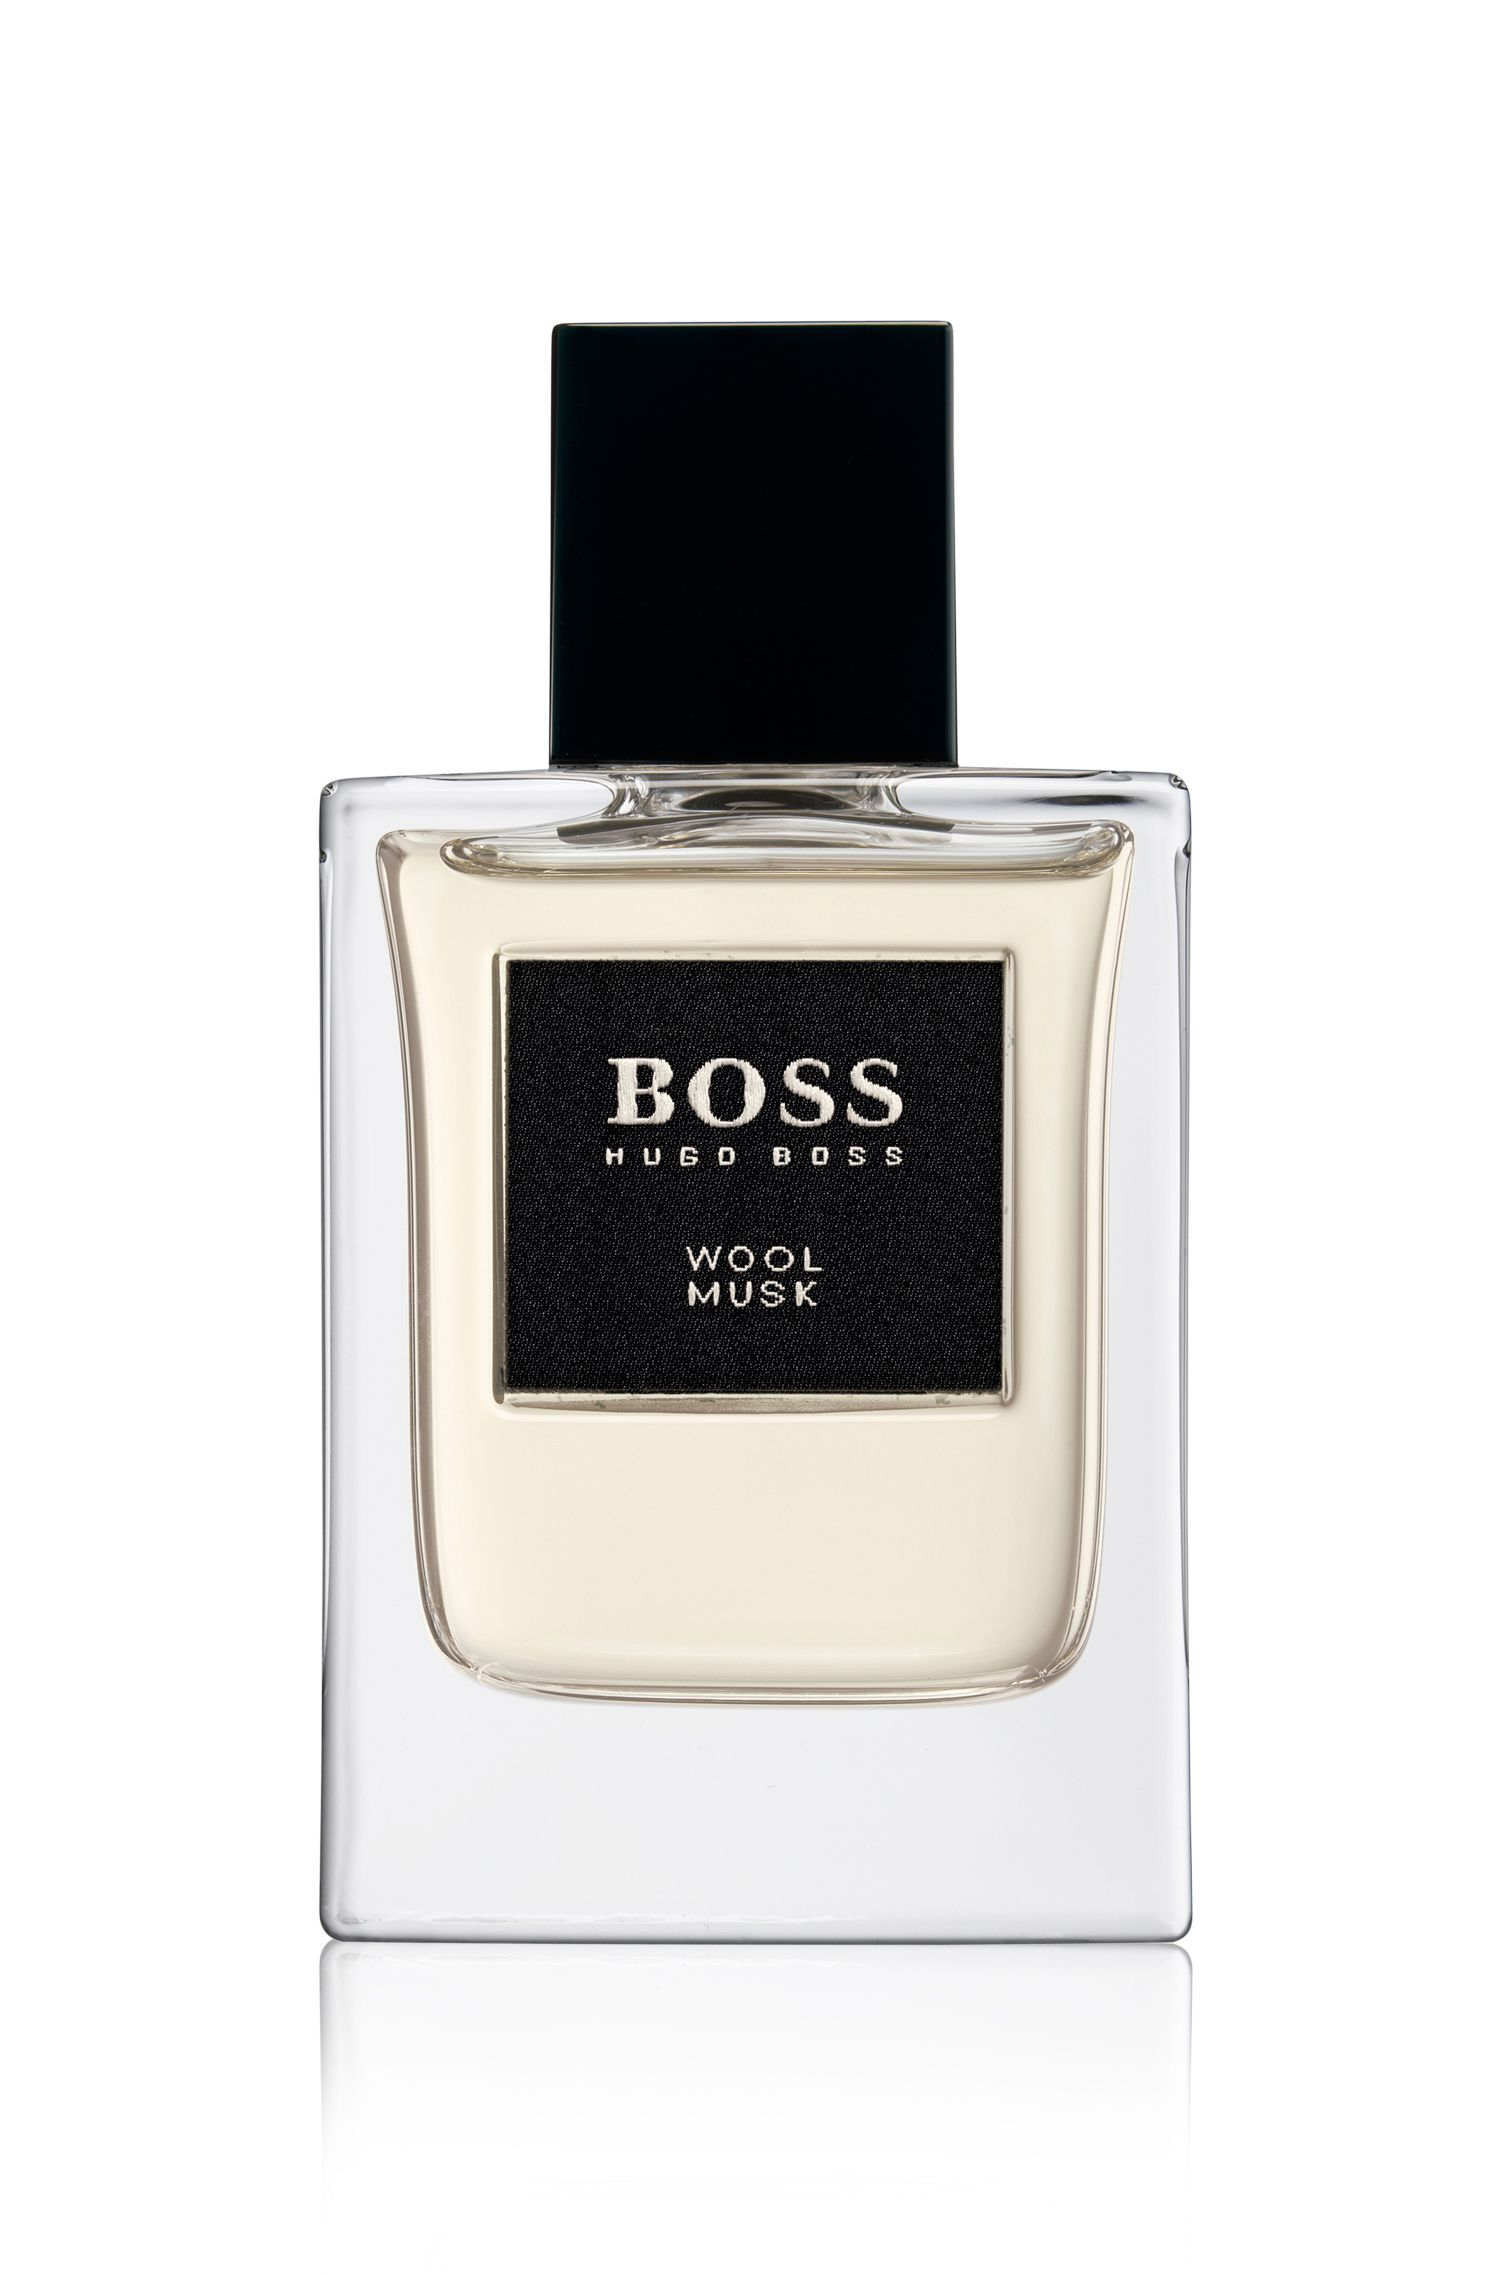 'BOSS The Collection' | 1.7 fl. oz. (50 mL) Wool & Musk Eau de Toilette